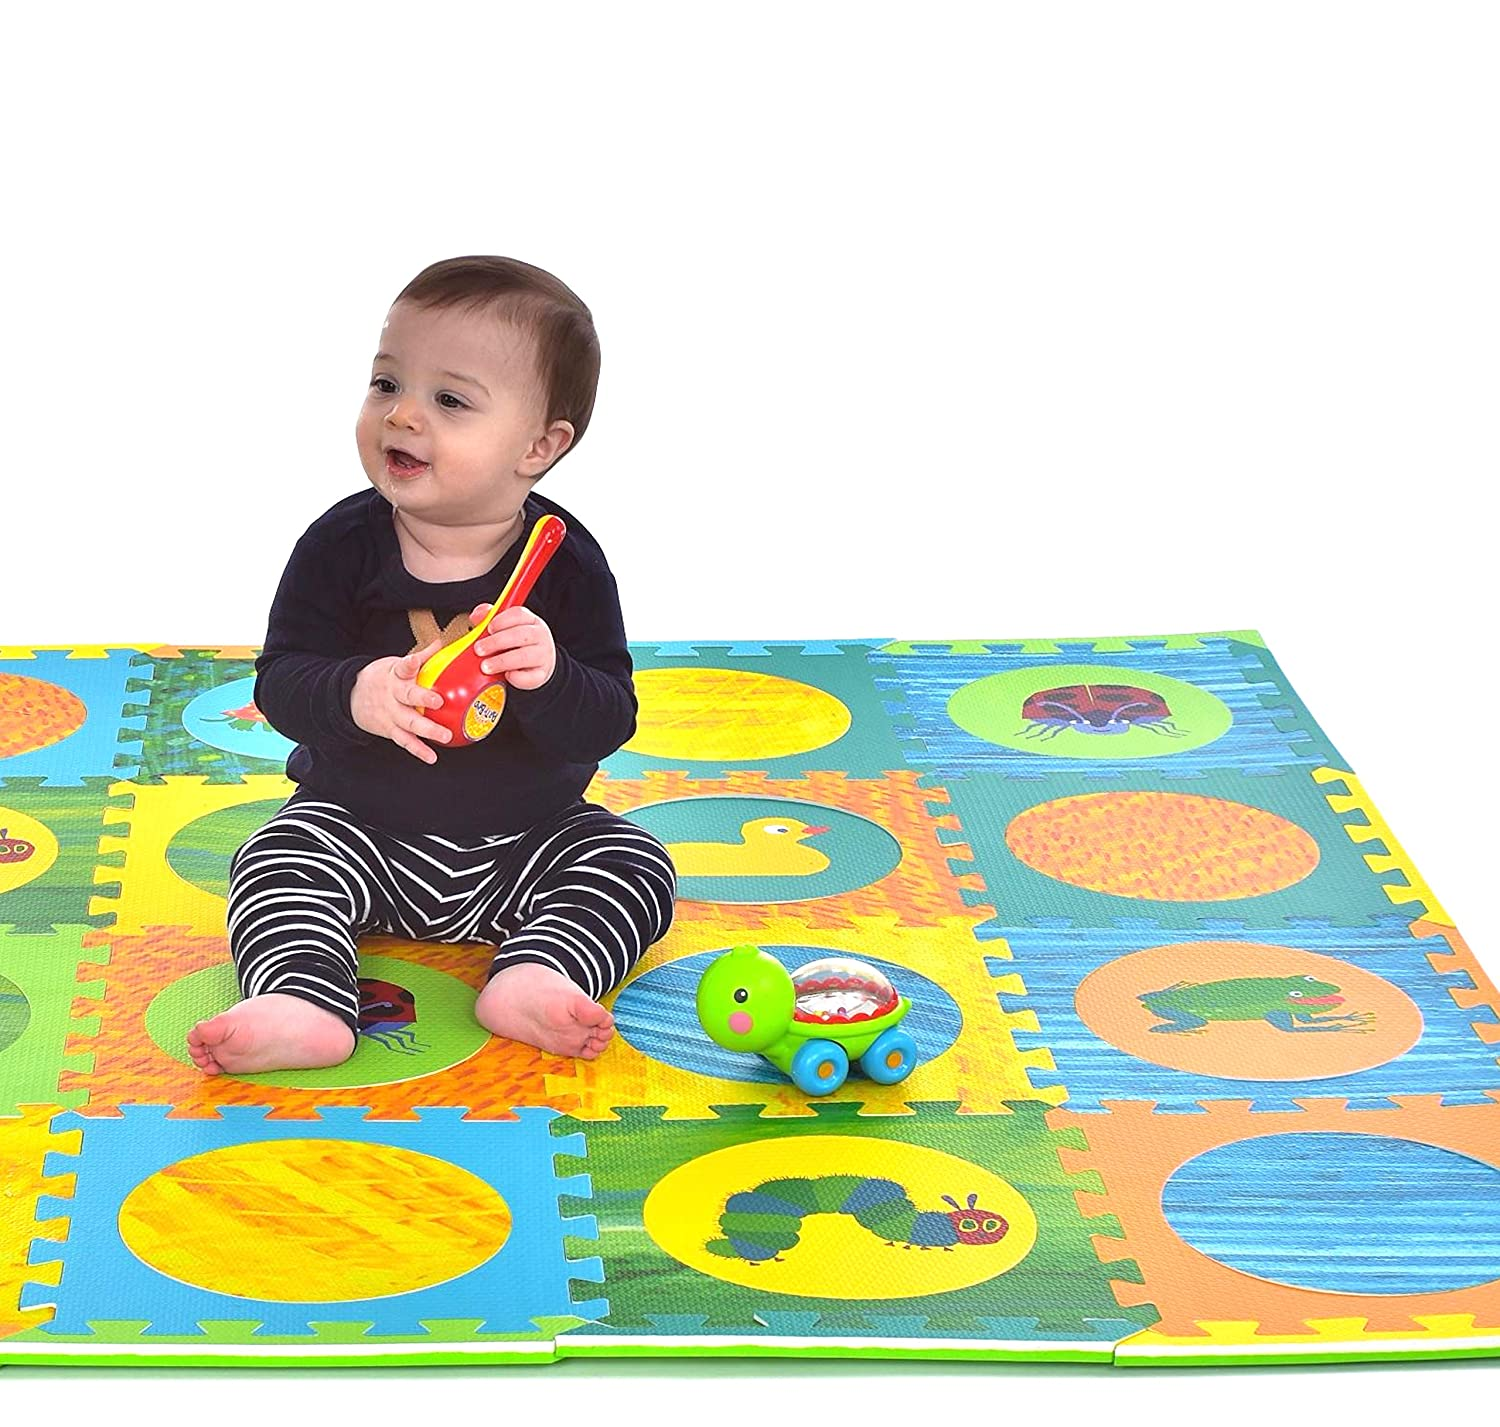 Hungry Caterpillar Baby Mat, Puzzle Mat, Baby Play Mat, Foam Mat, 20 Foam Floor Tiles, Foam Puzzle Mat, Non-Toxic, EVA Foam Mat, Girl & Boy, Infant Play Mat Baby Playmat 65'' x 52'' Eric Carle